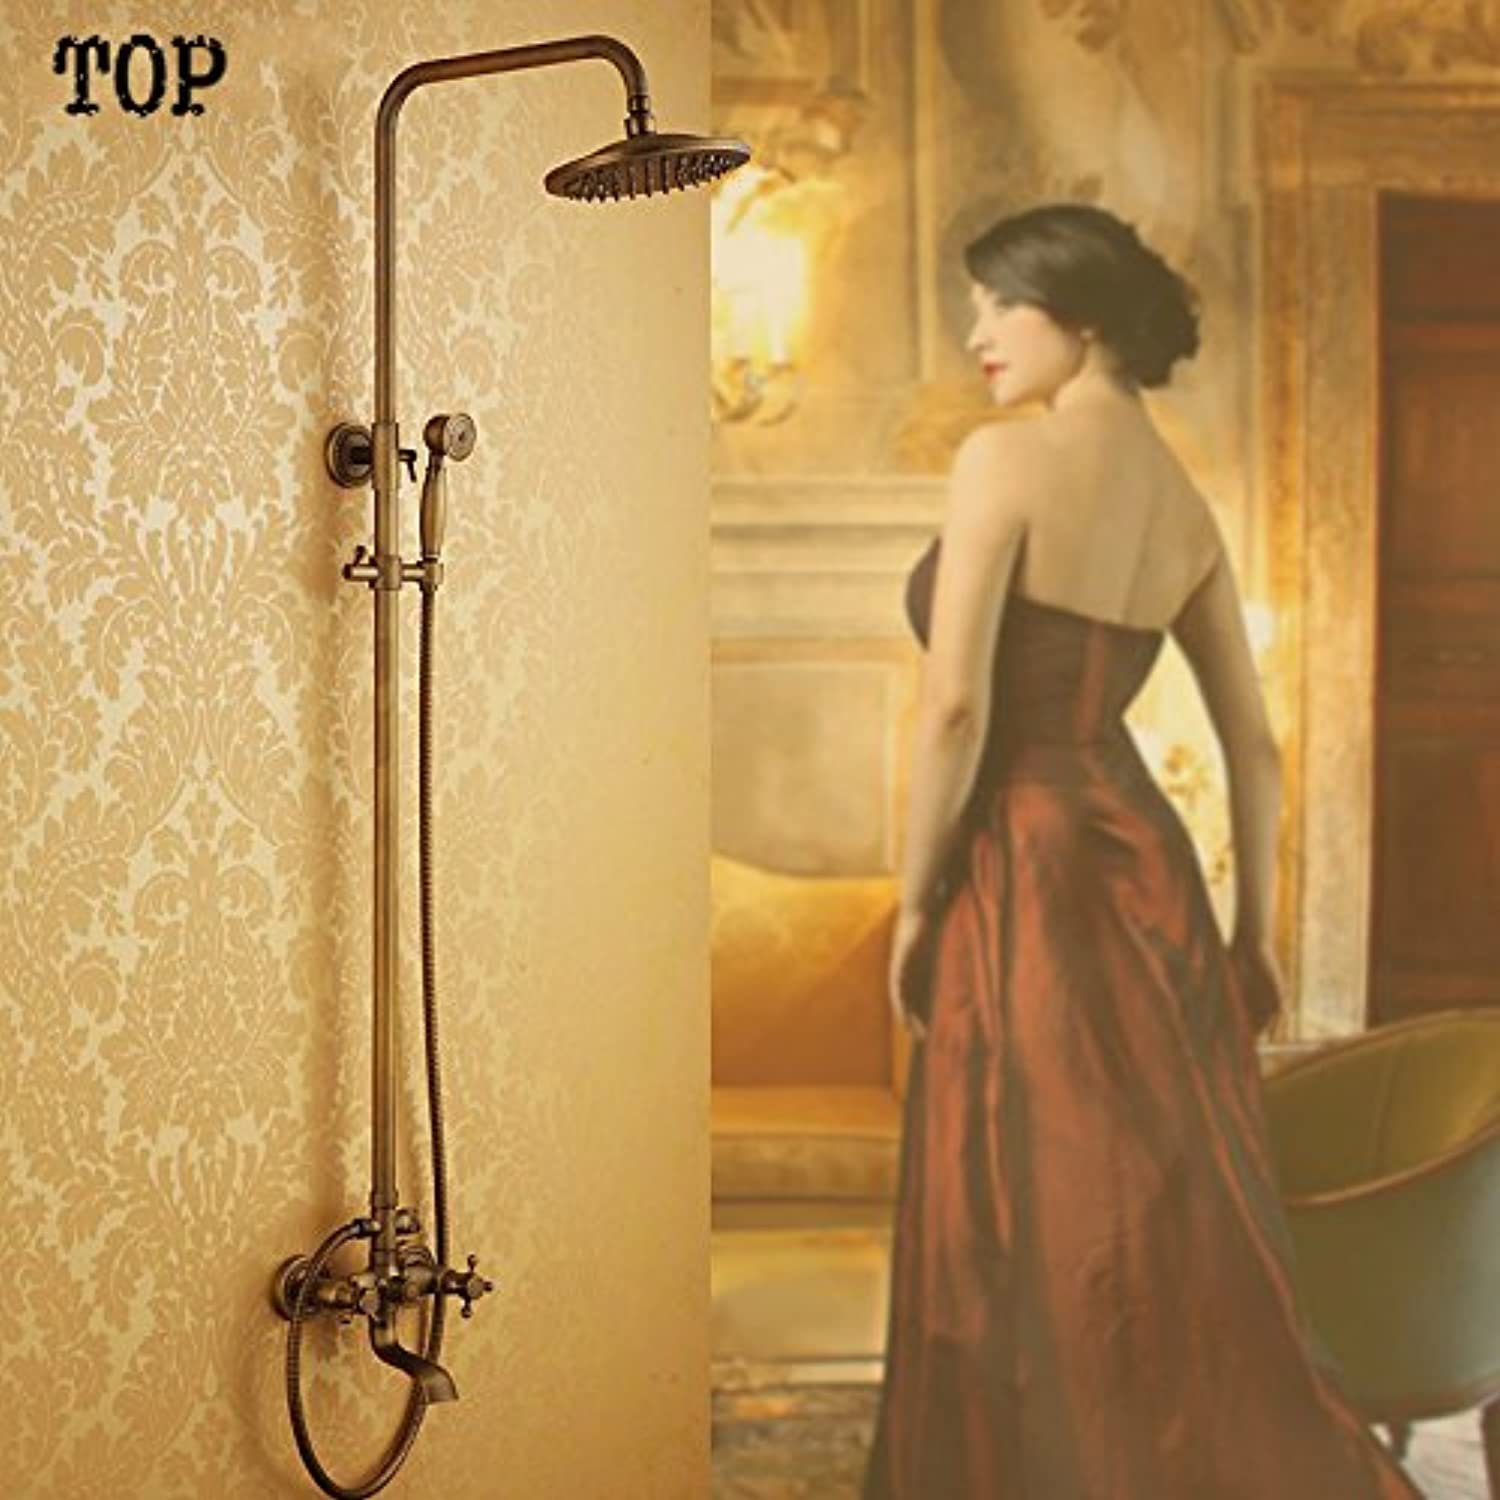 High quality antique bathroom shower set include 8 inch brass shower head and hand shower,Weiß